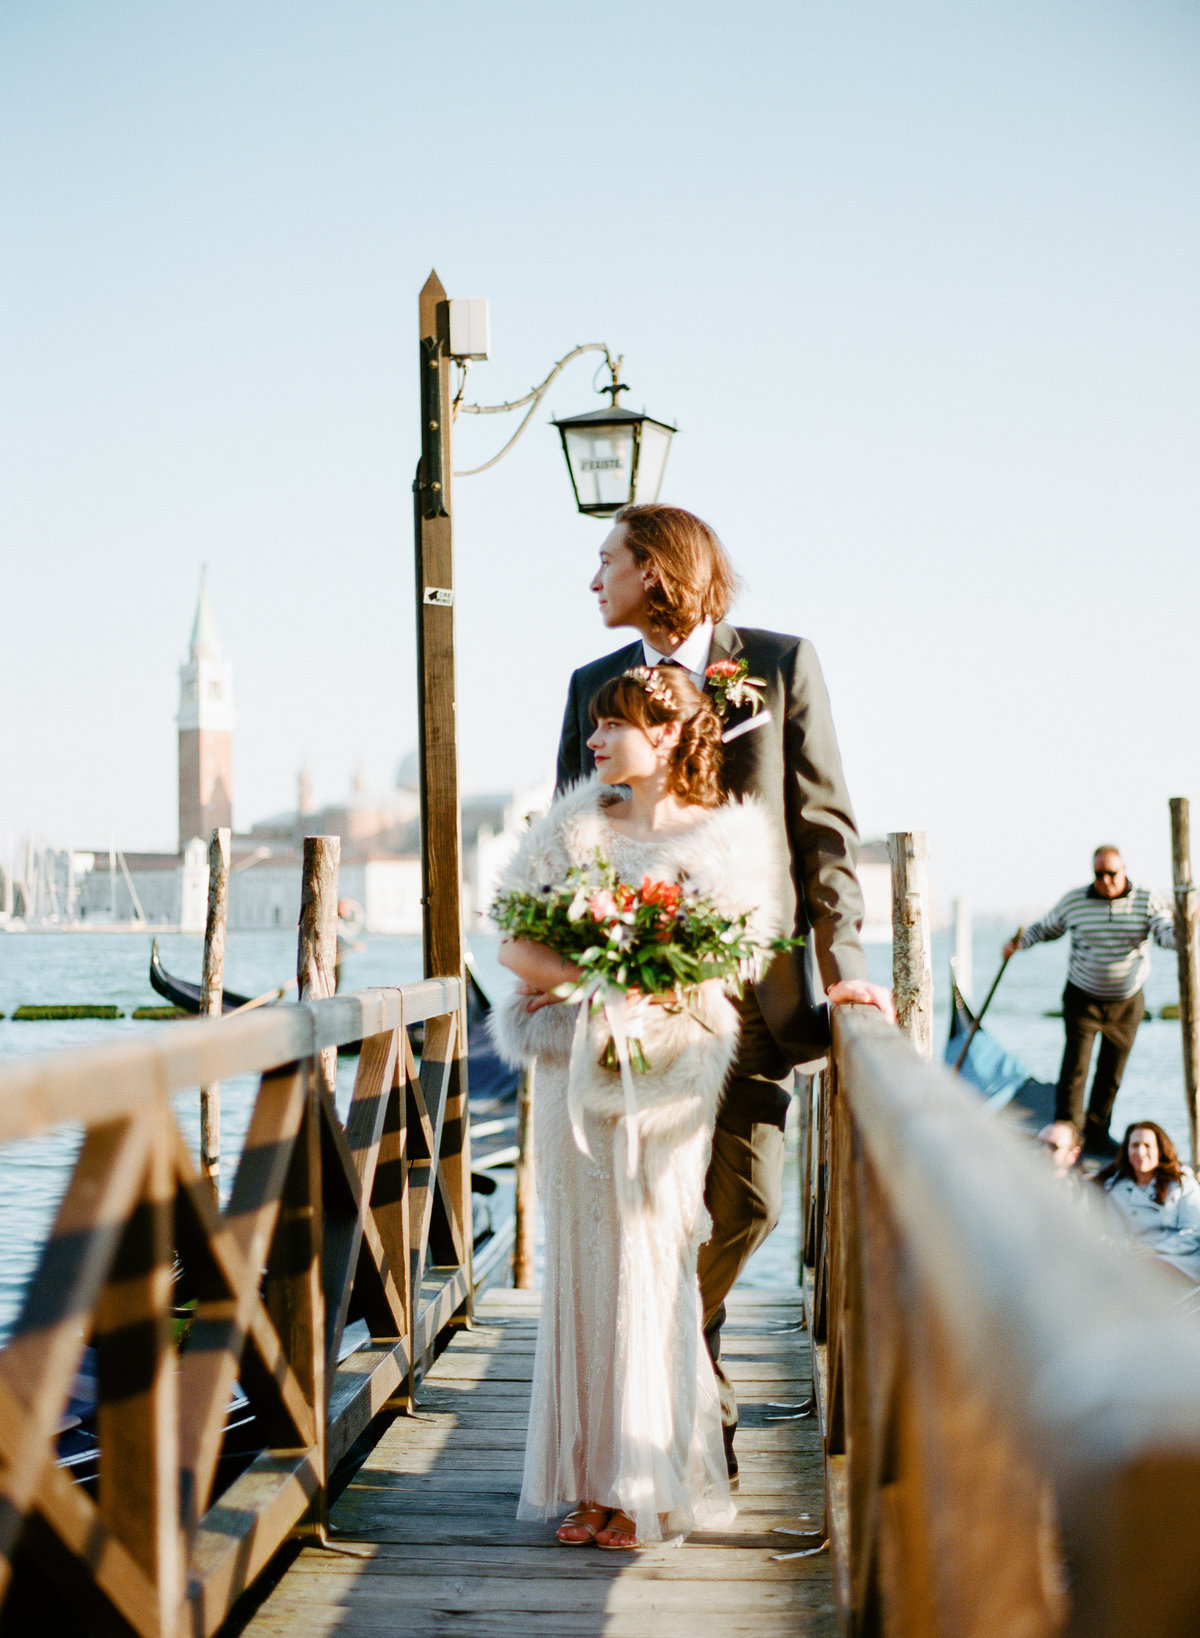 venice italy destination wedding elopement couple on gondola dock photographer